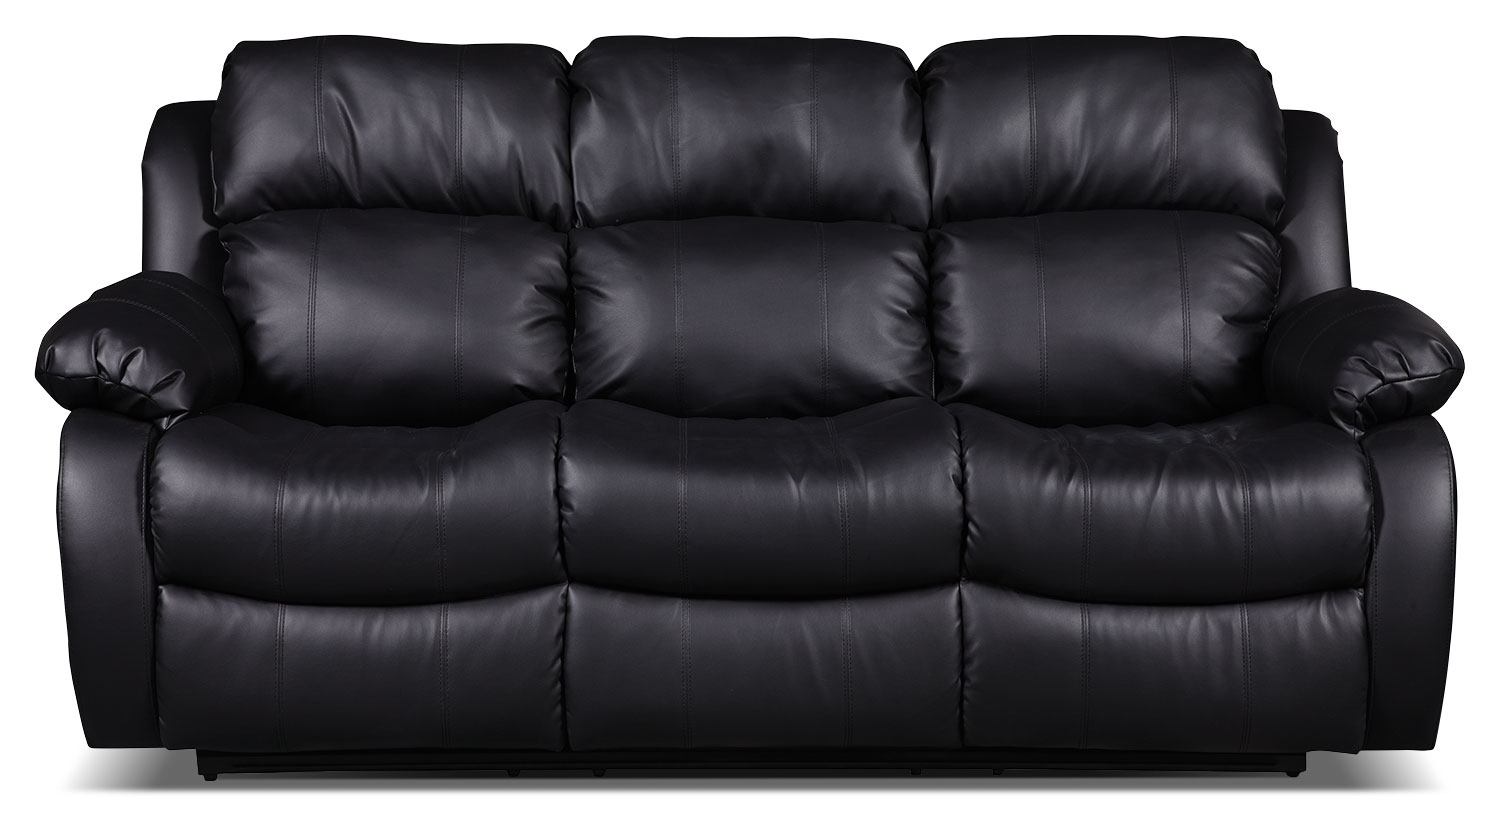 Living Room Furniture - Omega 2 Bonded Leather Reclining Sofa – Black